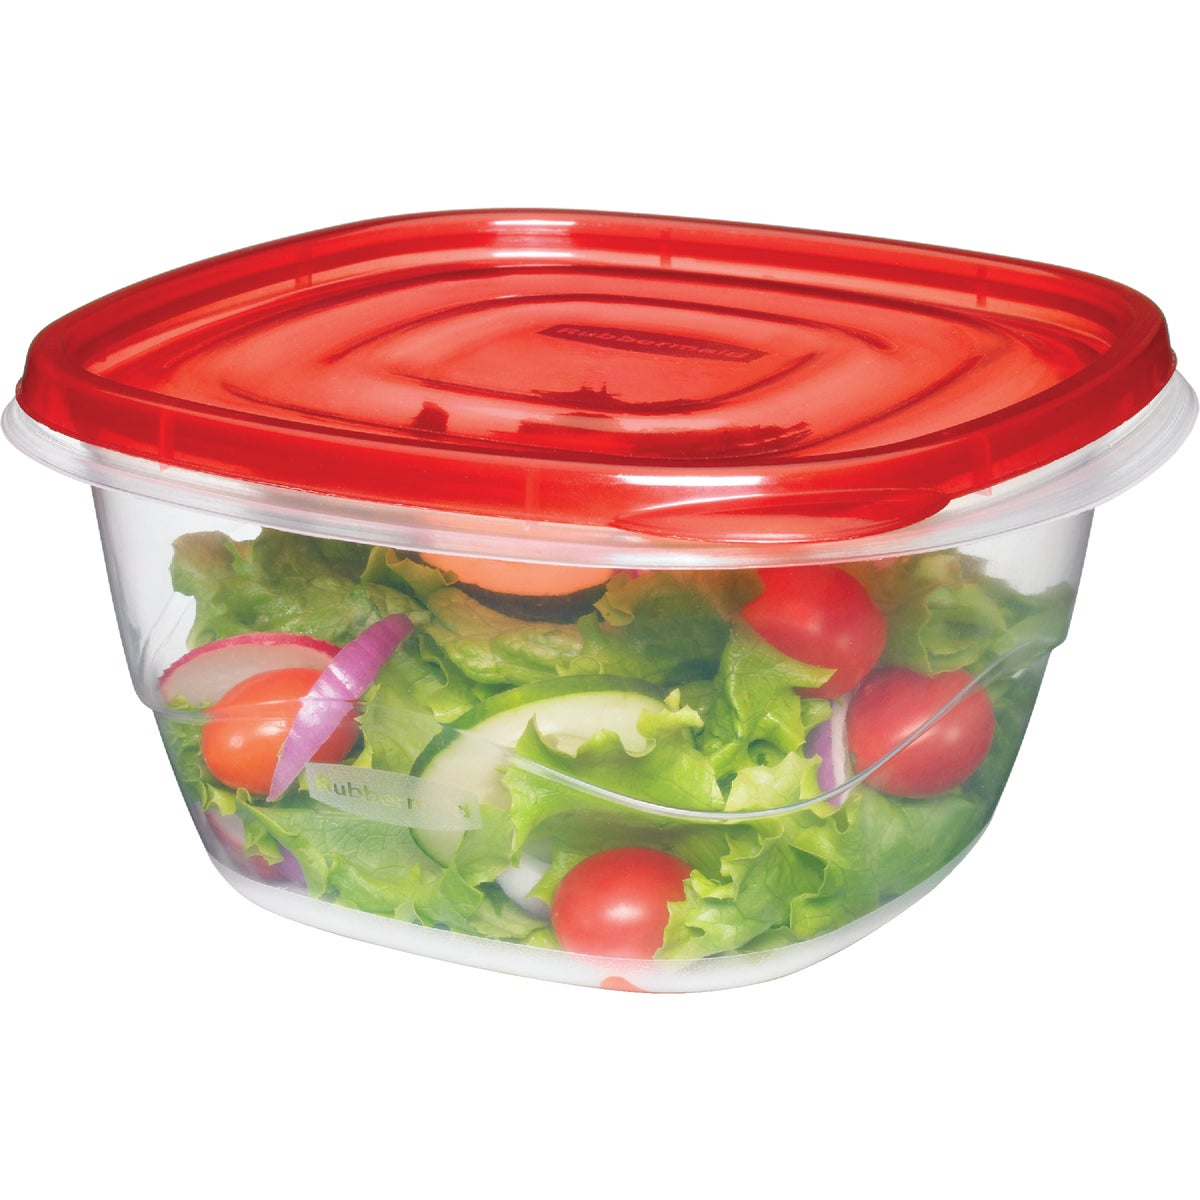 4PC SQUARE CONTAINERS - FG7F54RE-TCHIL by Rubbermaid Home